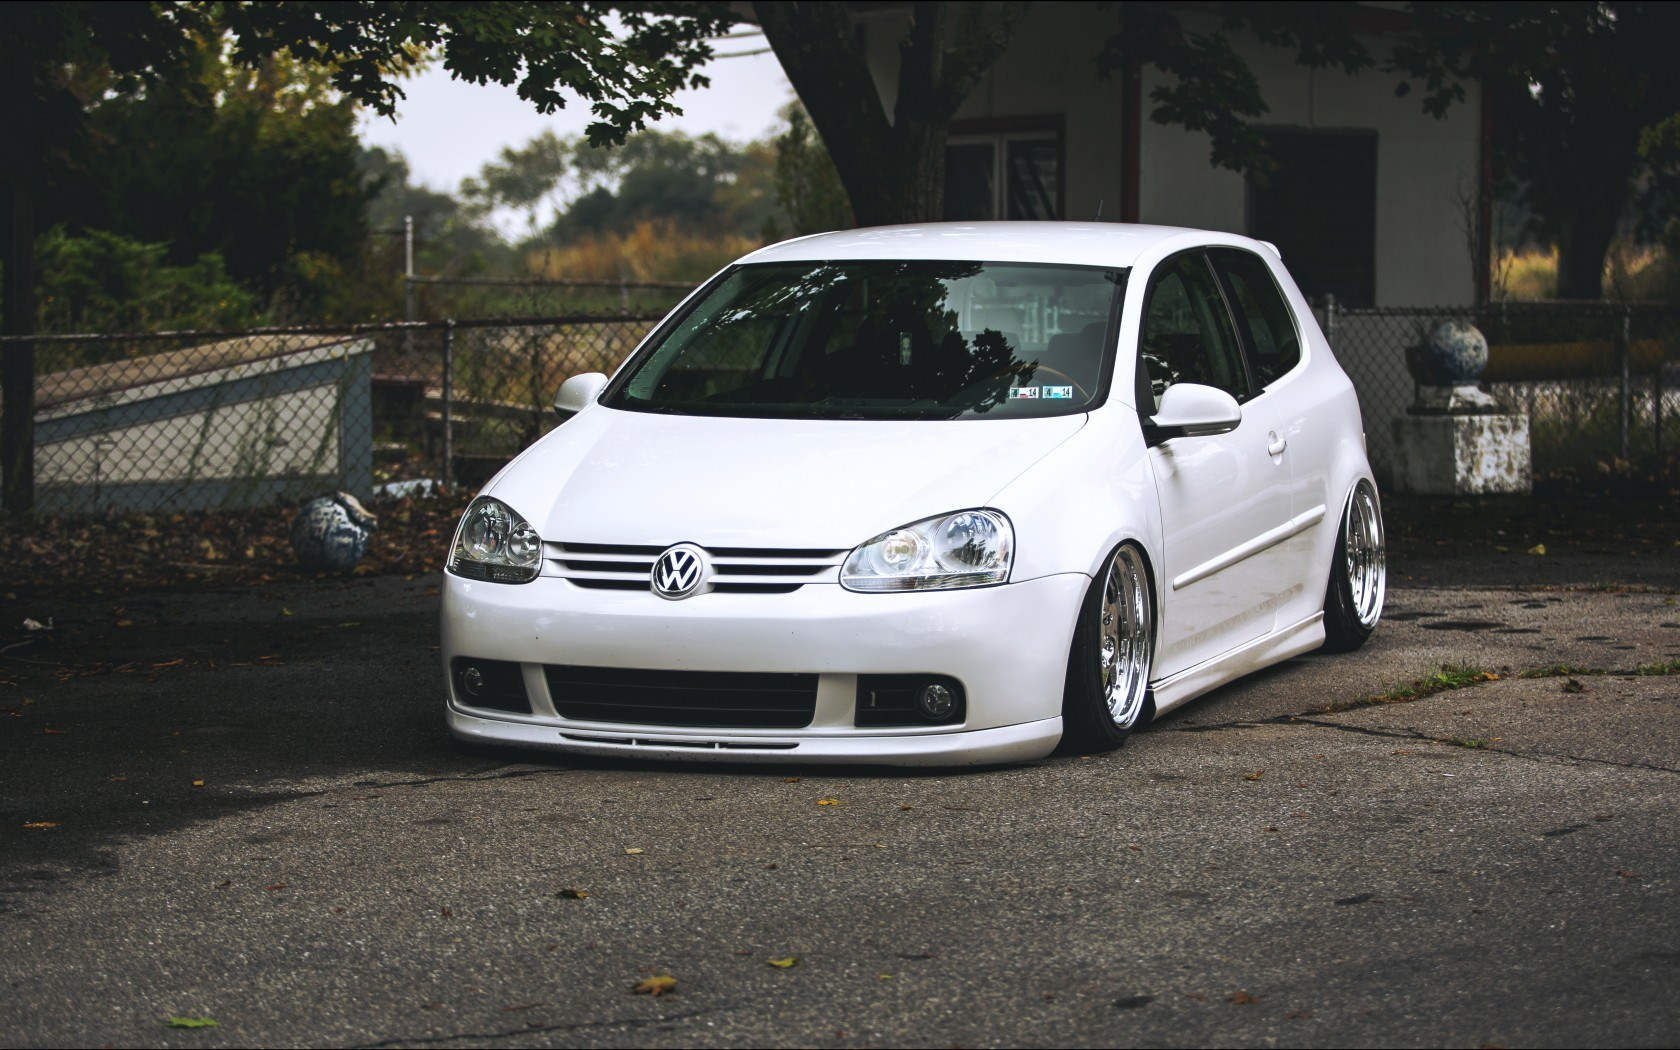 VW Volkswagen Golf MK5 White Tuning Car Front